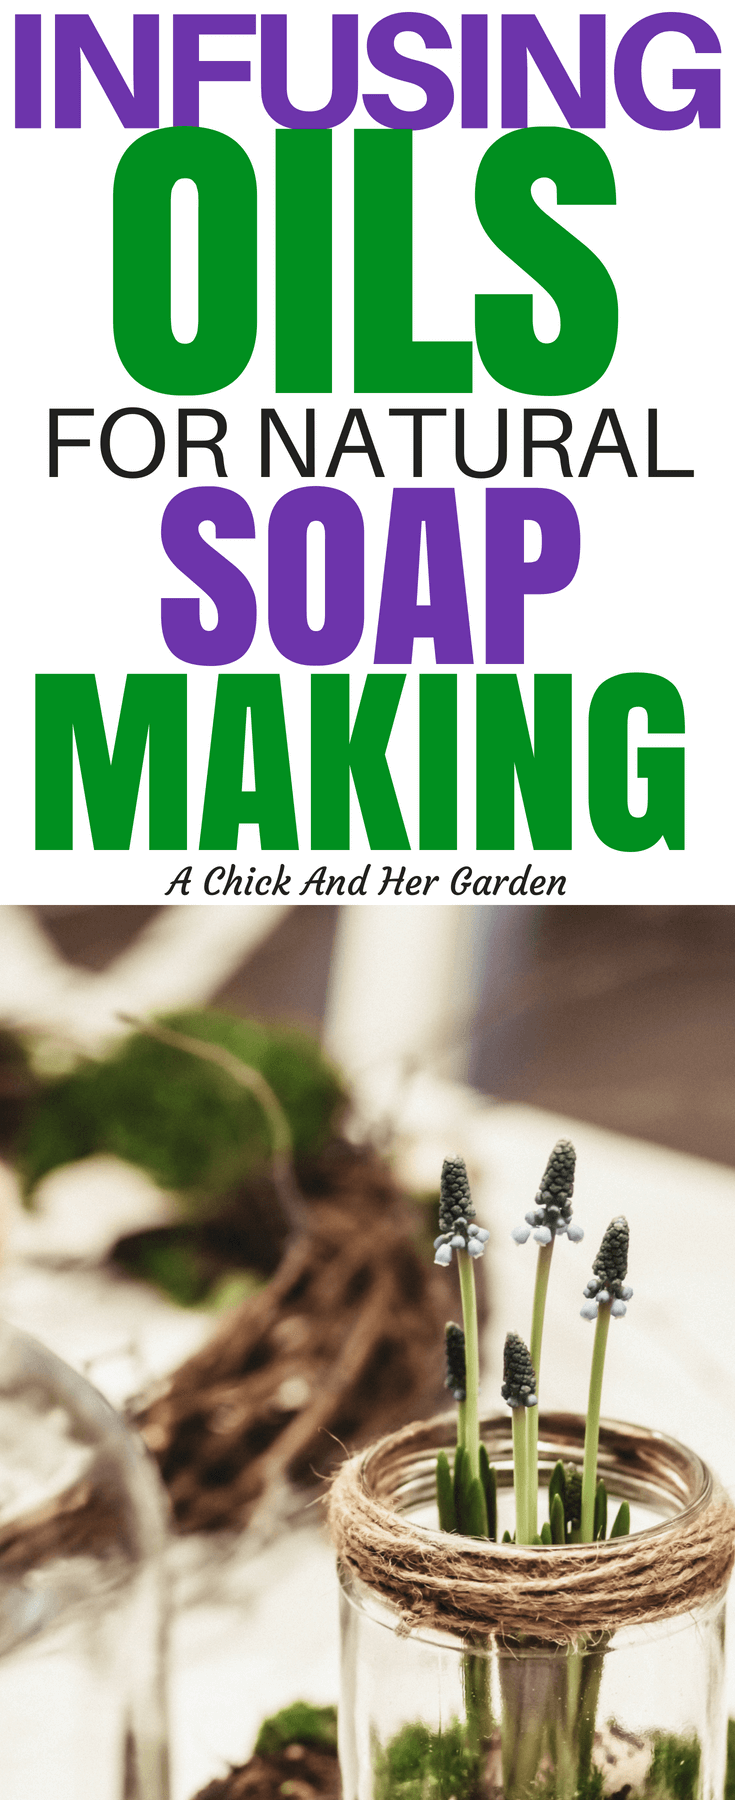 One of my favorite parts of natural soap making is including different herbs and plants for their healing properties! This is a great tutorial on how to infuse oils for natural soap making! #soapmaking #DIY #herbs #naturalhealing #naturalhealth #homesteading #selfsufficiency #achickandhergarden